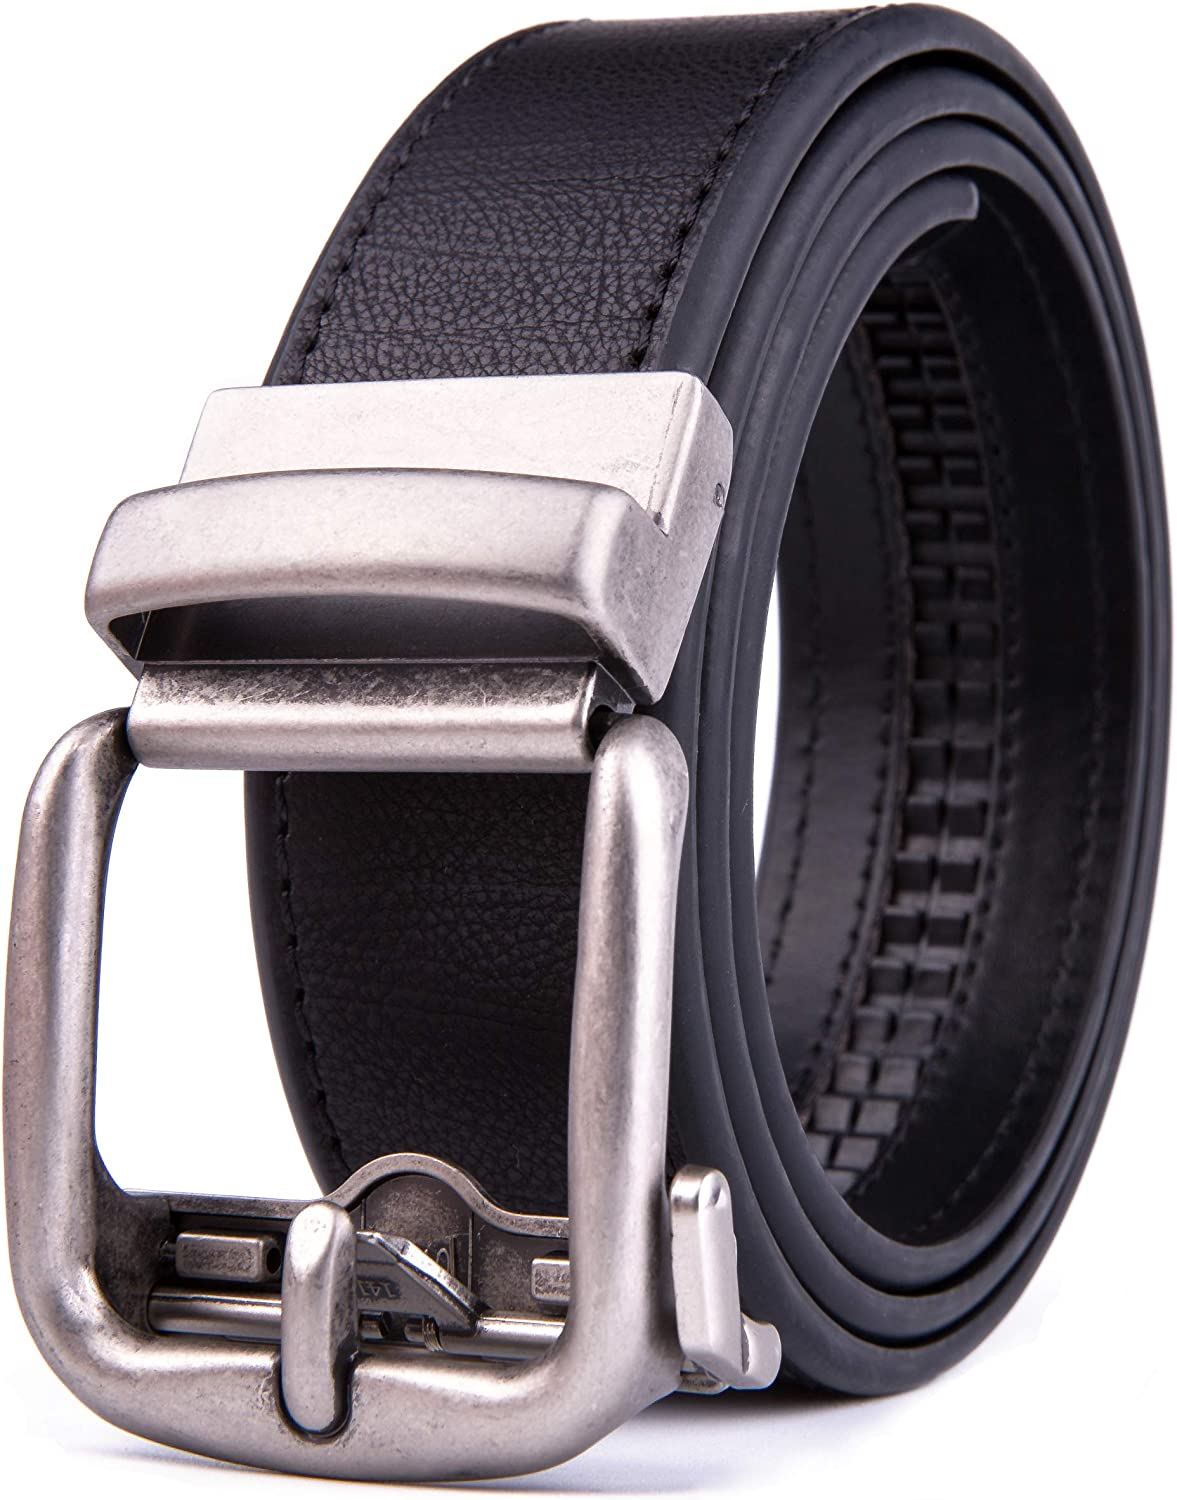 Men's Slide Ratchet and Reversible Belt, Handcrafted Leather, Trim to Fit